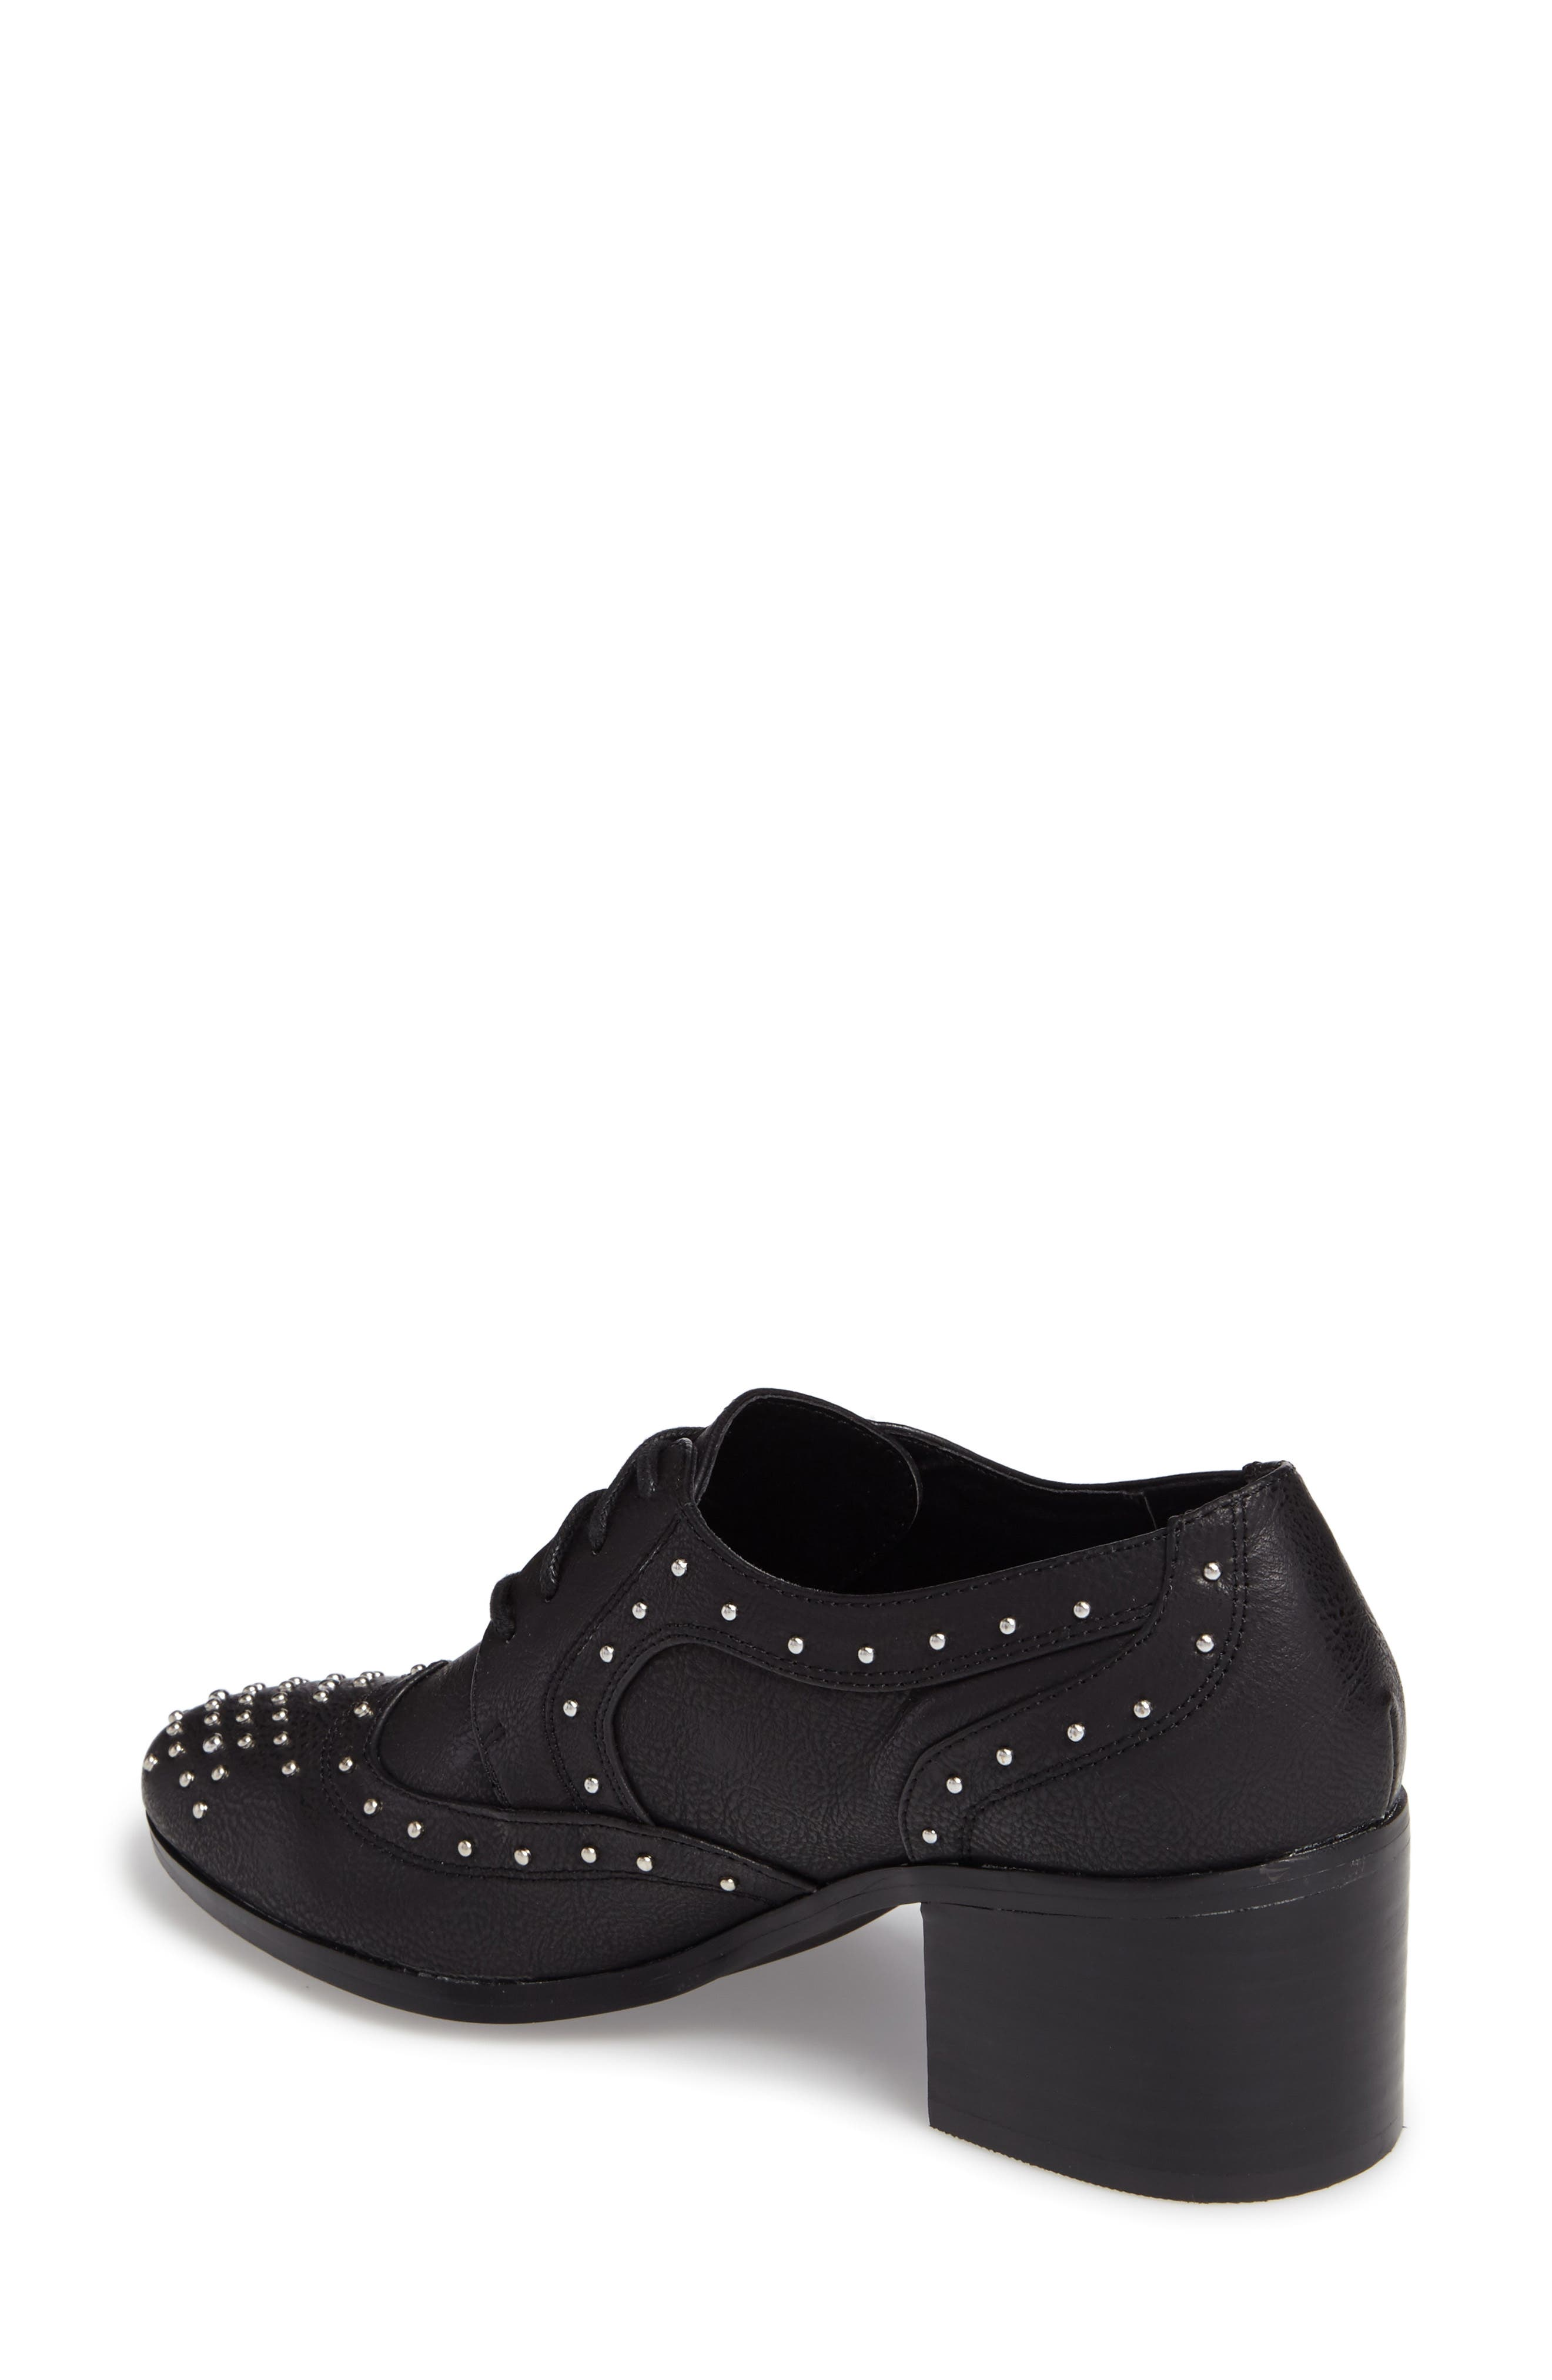 Alternate Image 2  - Coconuts by Matisse Fleur Studded Oxford Pump (Women)